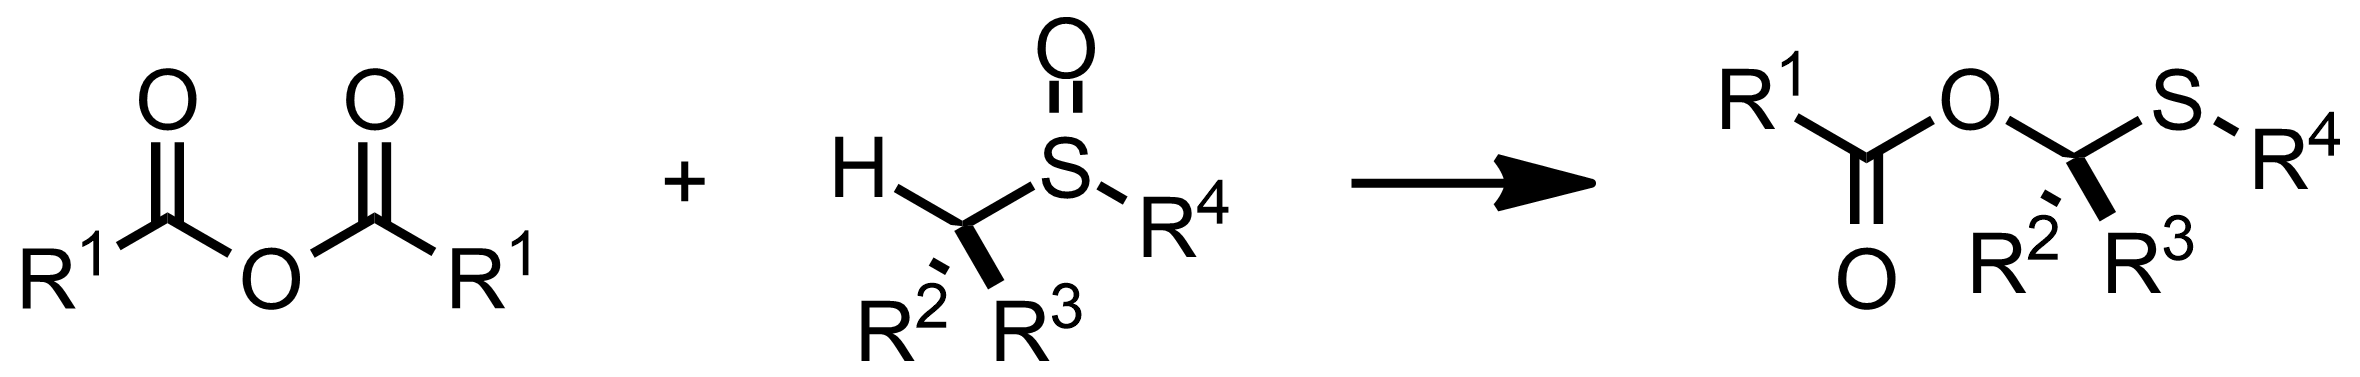 Schematic representation of the Pummerer Rearrangement.